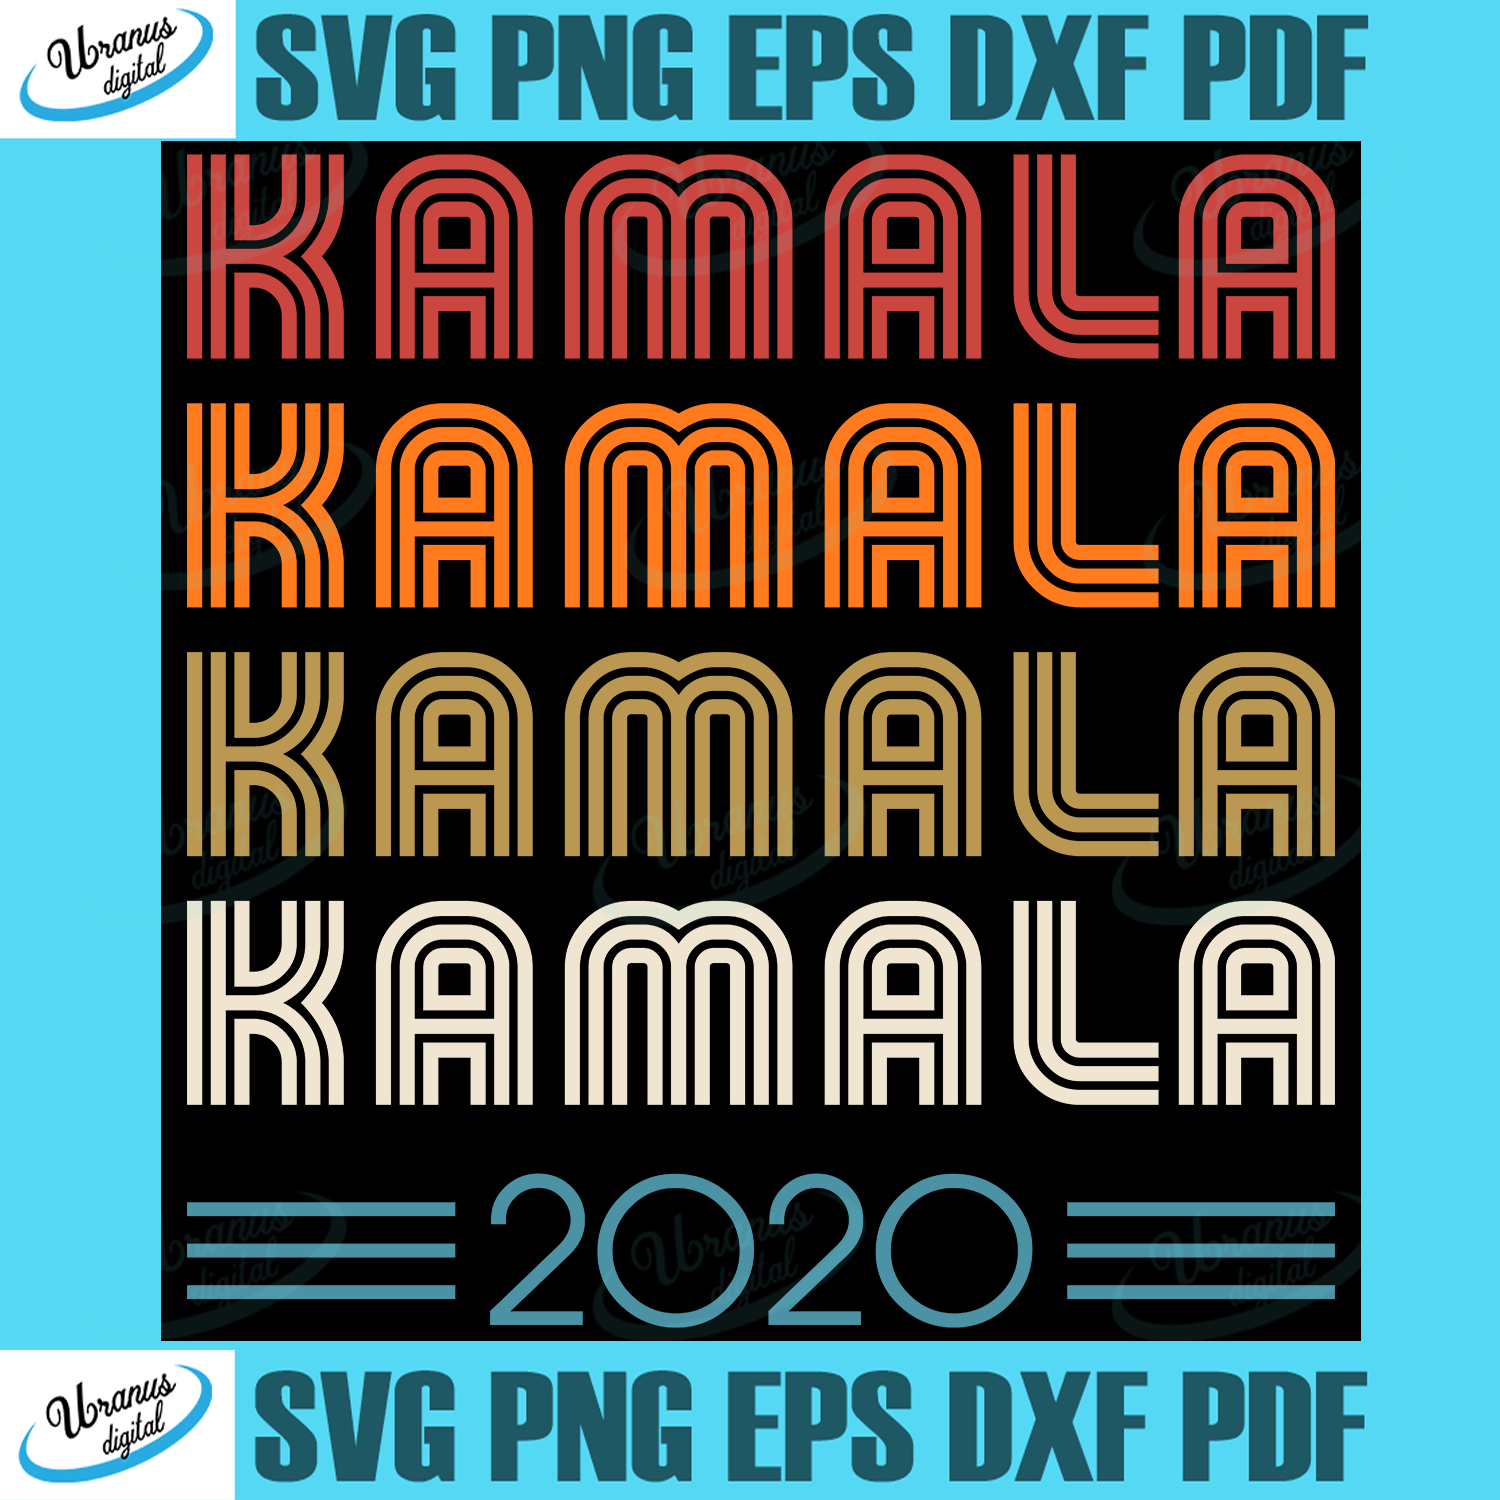 Trending Svg Kamala 2020 Svg Svg Harris 2020 Svg Political Shirt Svg Anti Trump 2020 Svg Biden For President Svg Svg Cricut Silhouette Svg Files Cricut Svg Silhouette Svg Svg Designs Vinyl Svg Uranusdigital